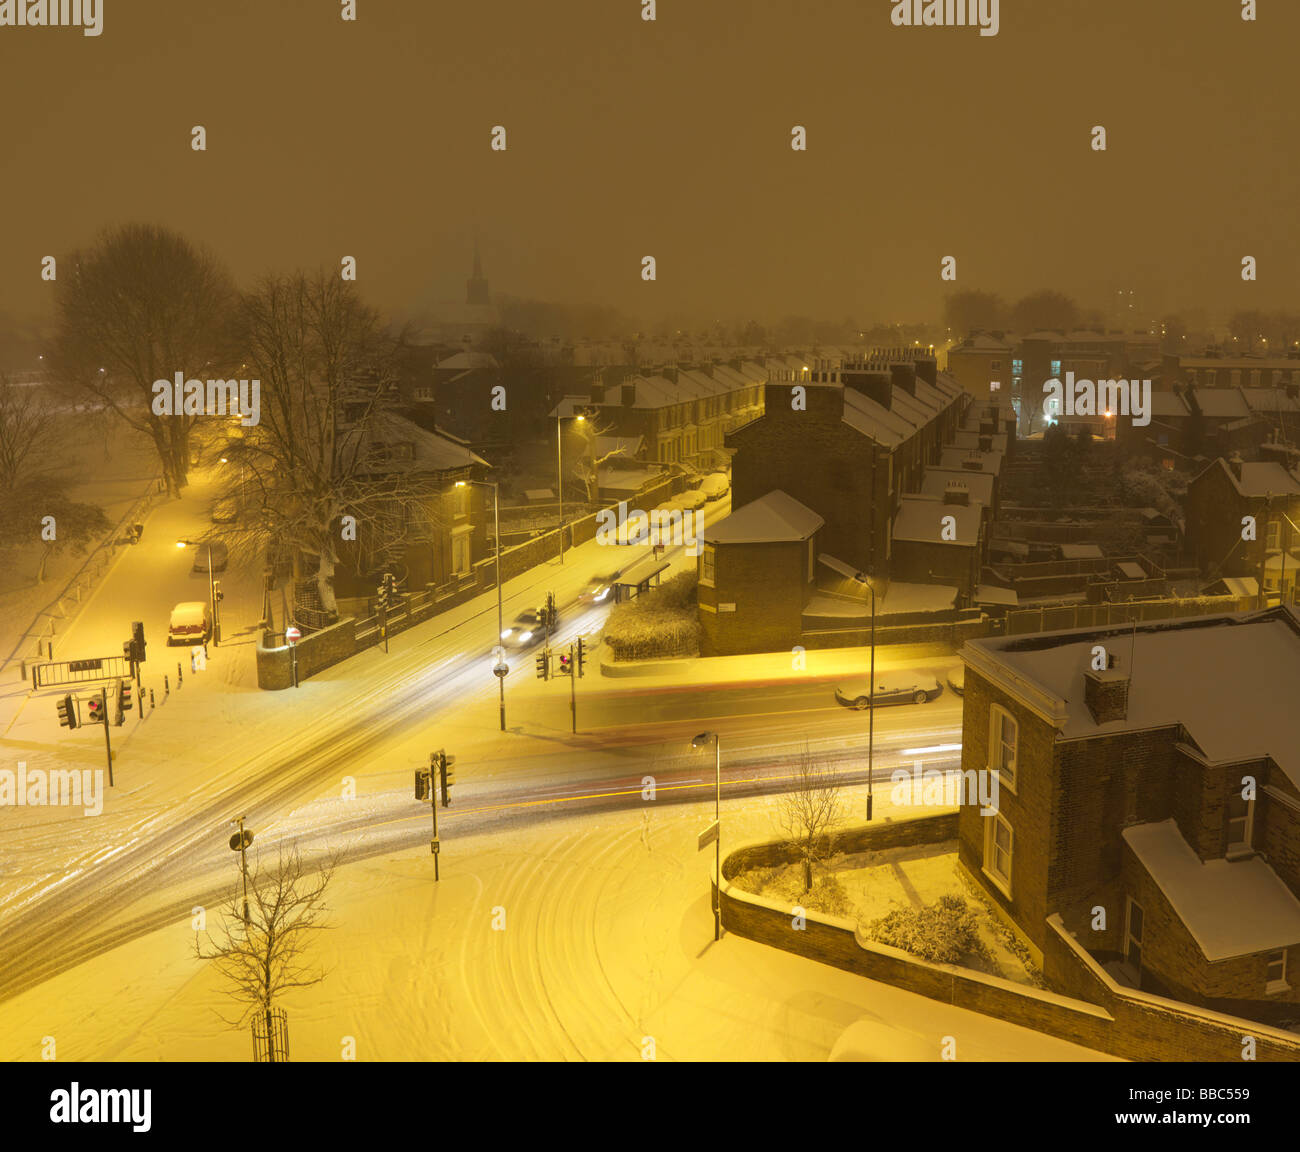 Snow-covered crossroads at night - Stock Image